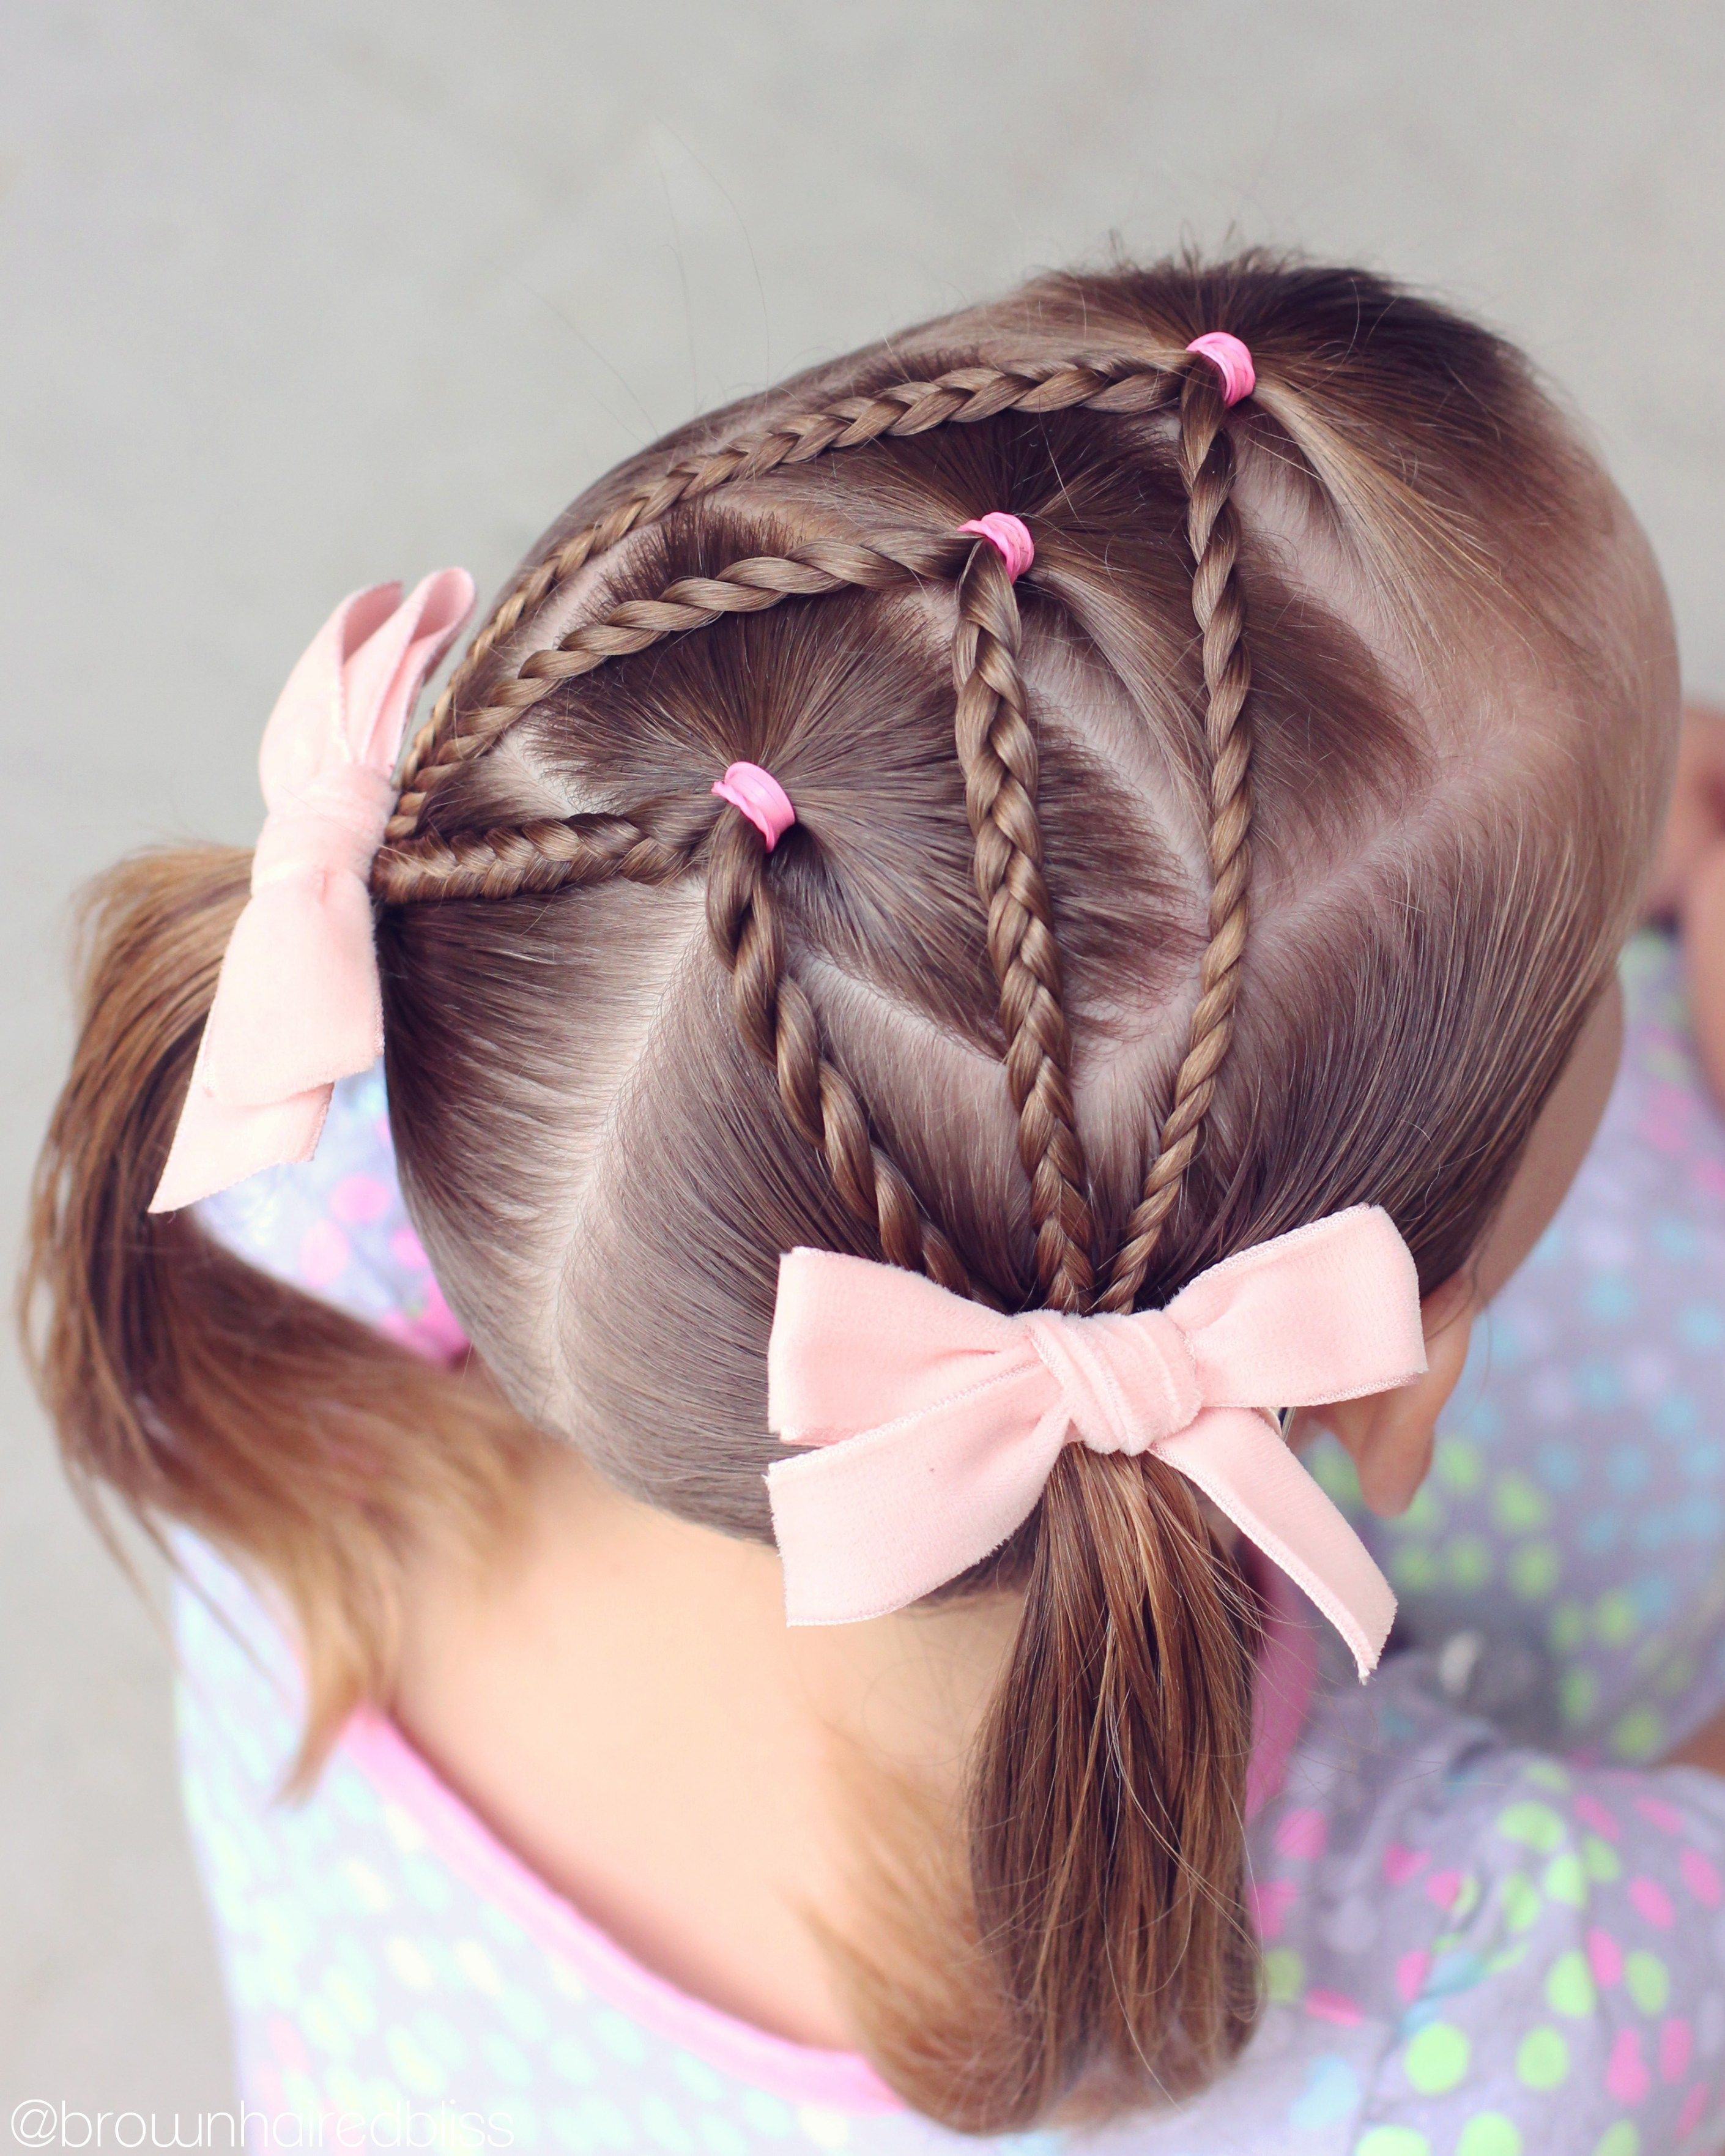 No Title Little Girl Hairstyles Girl Hair Dos Kids Hairstyles